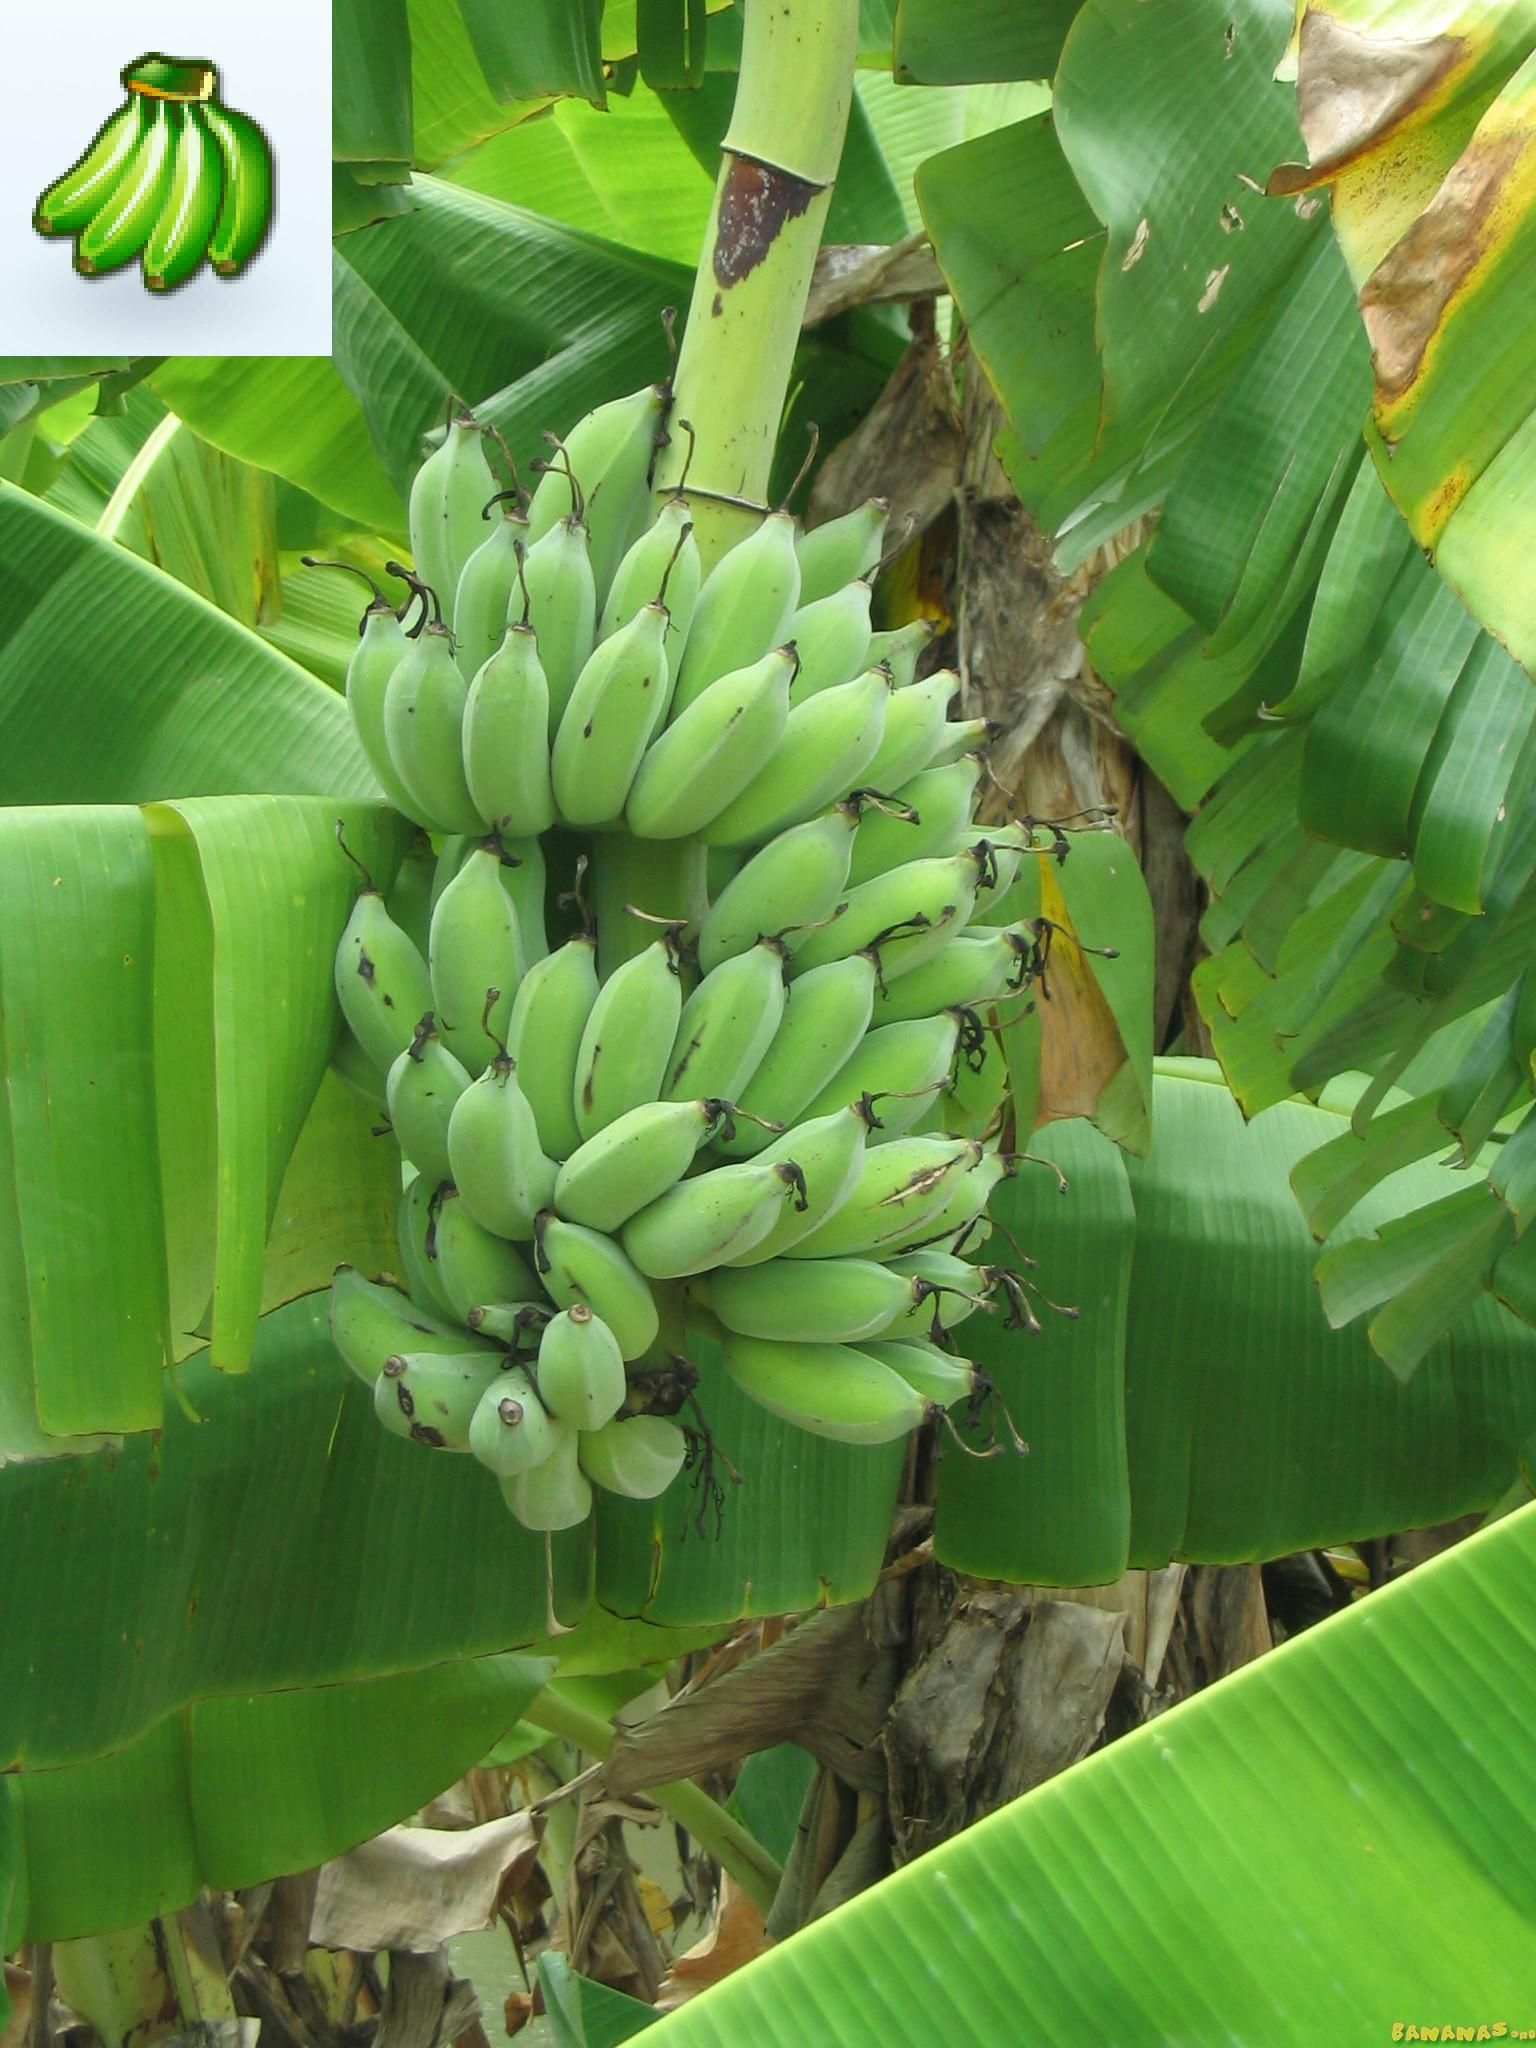 musa dwarf namwa banana tree height 6 39 9 39